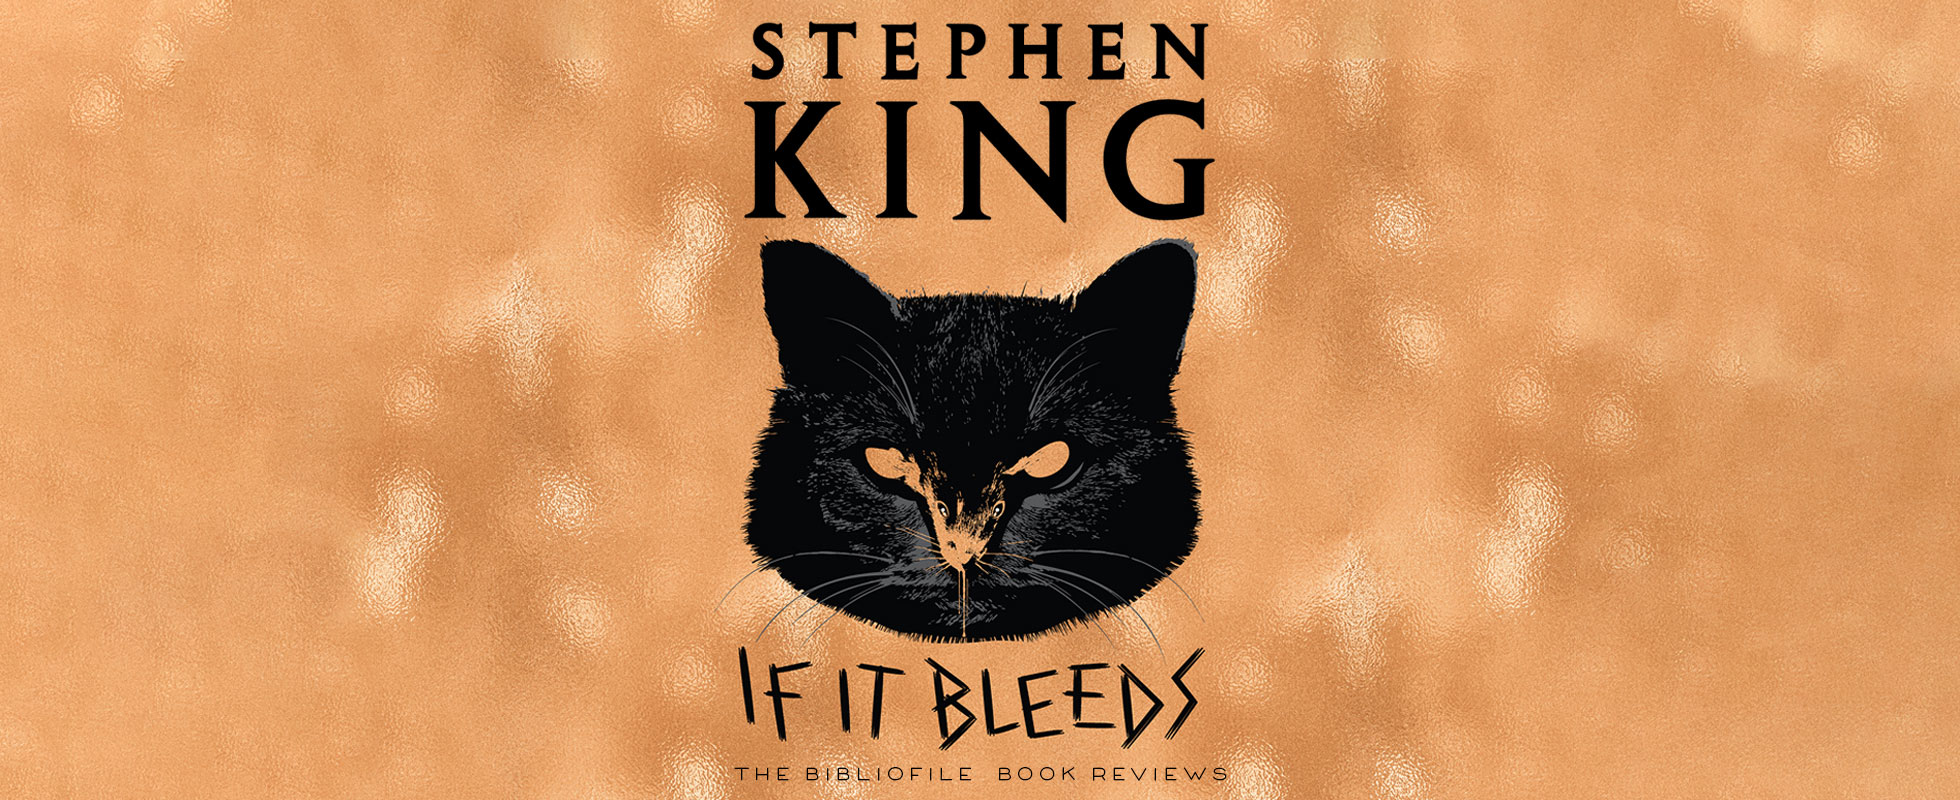 if it bleeds stephen king plot summary book review synopsis spoilers ending